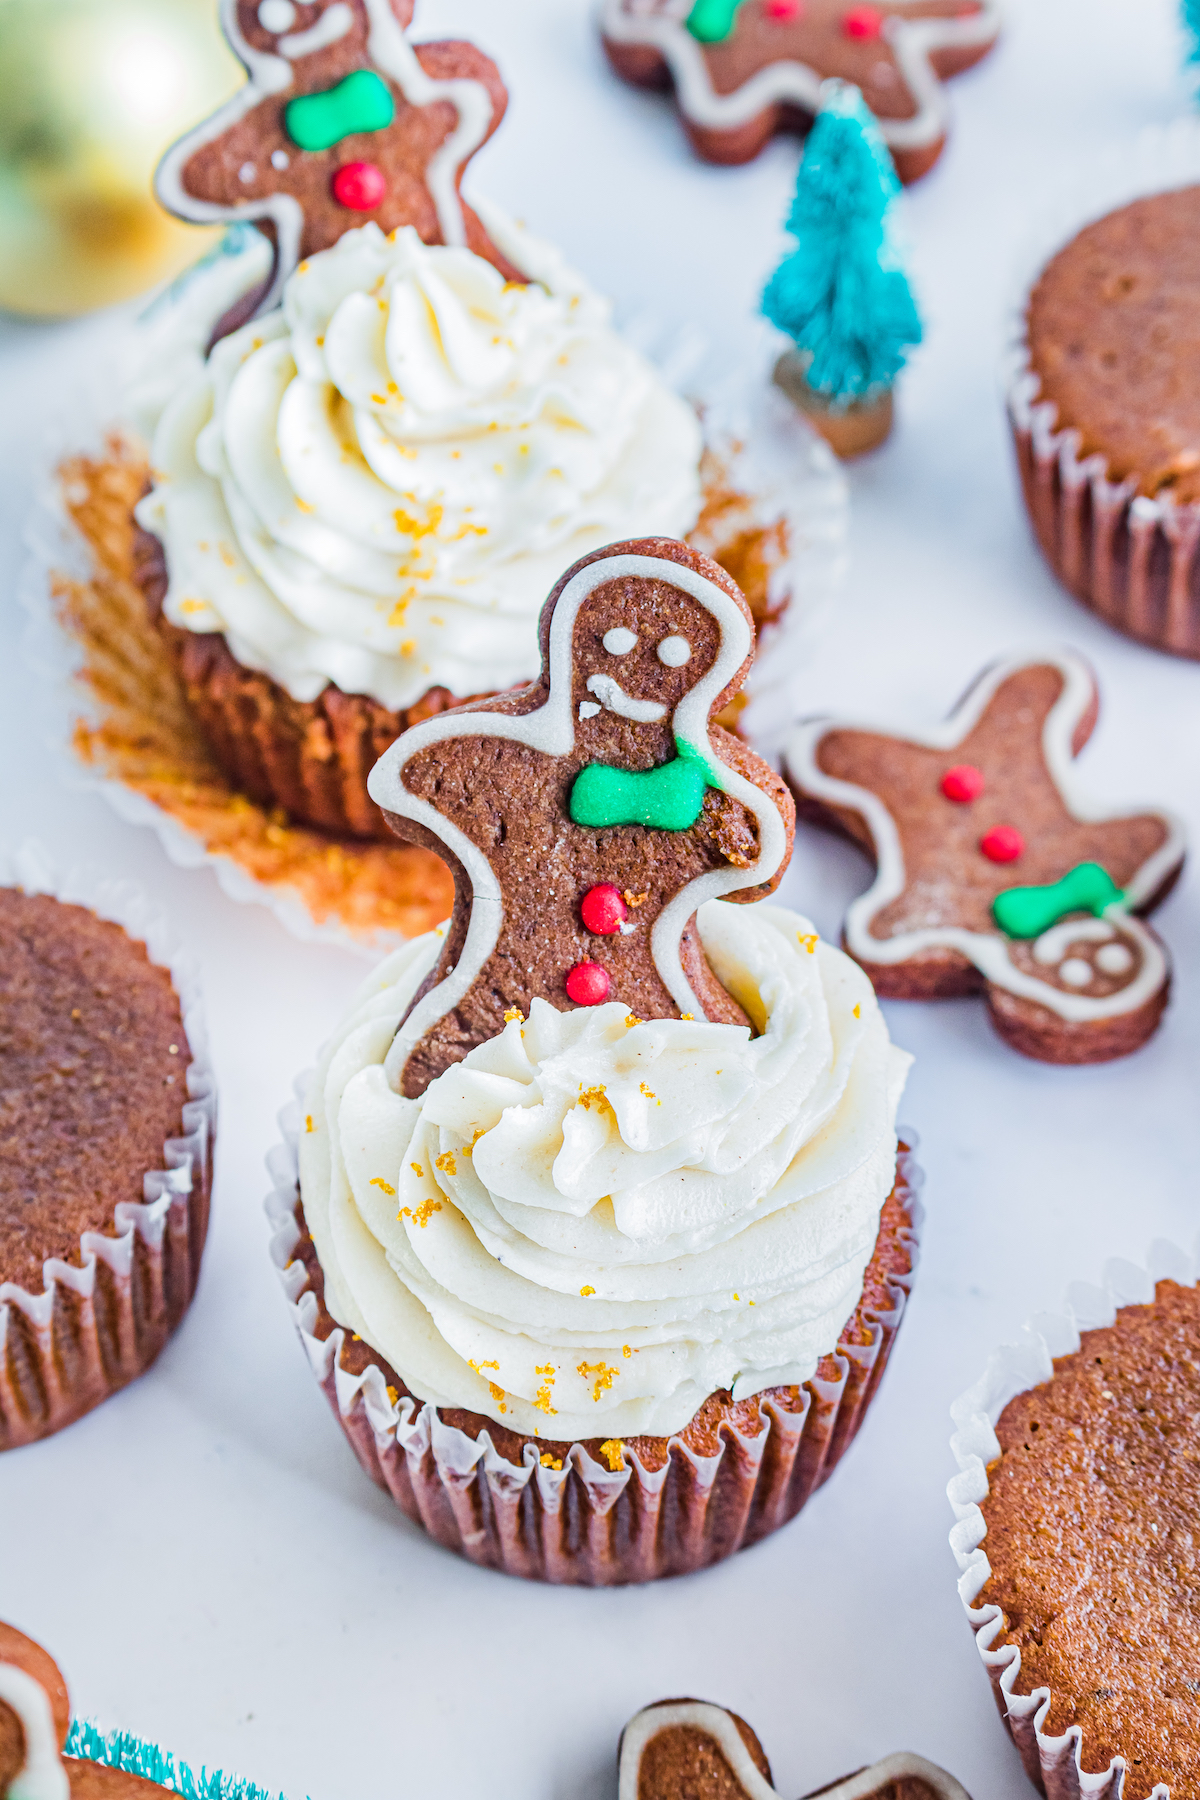 decorated gingerbread cupcakes on a table